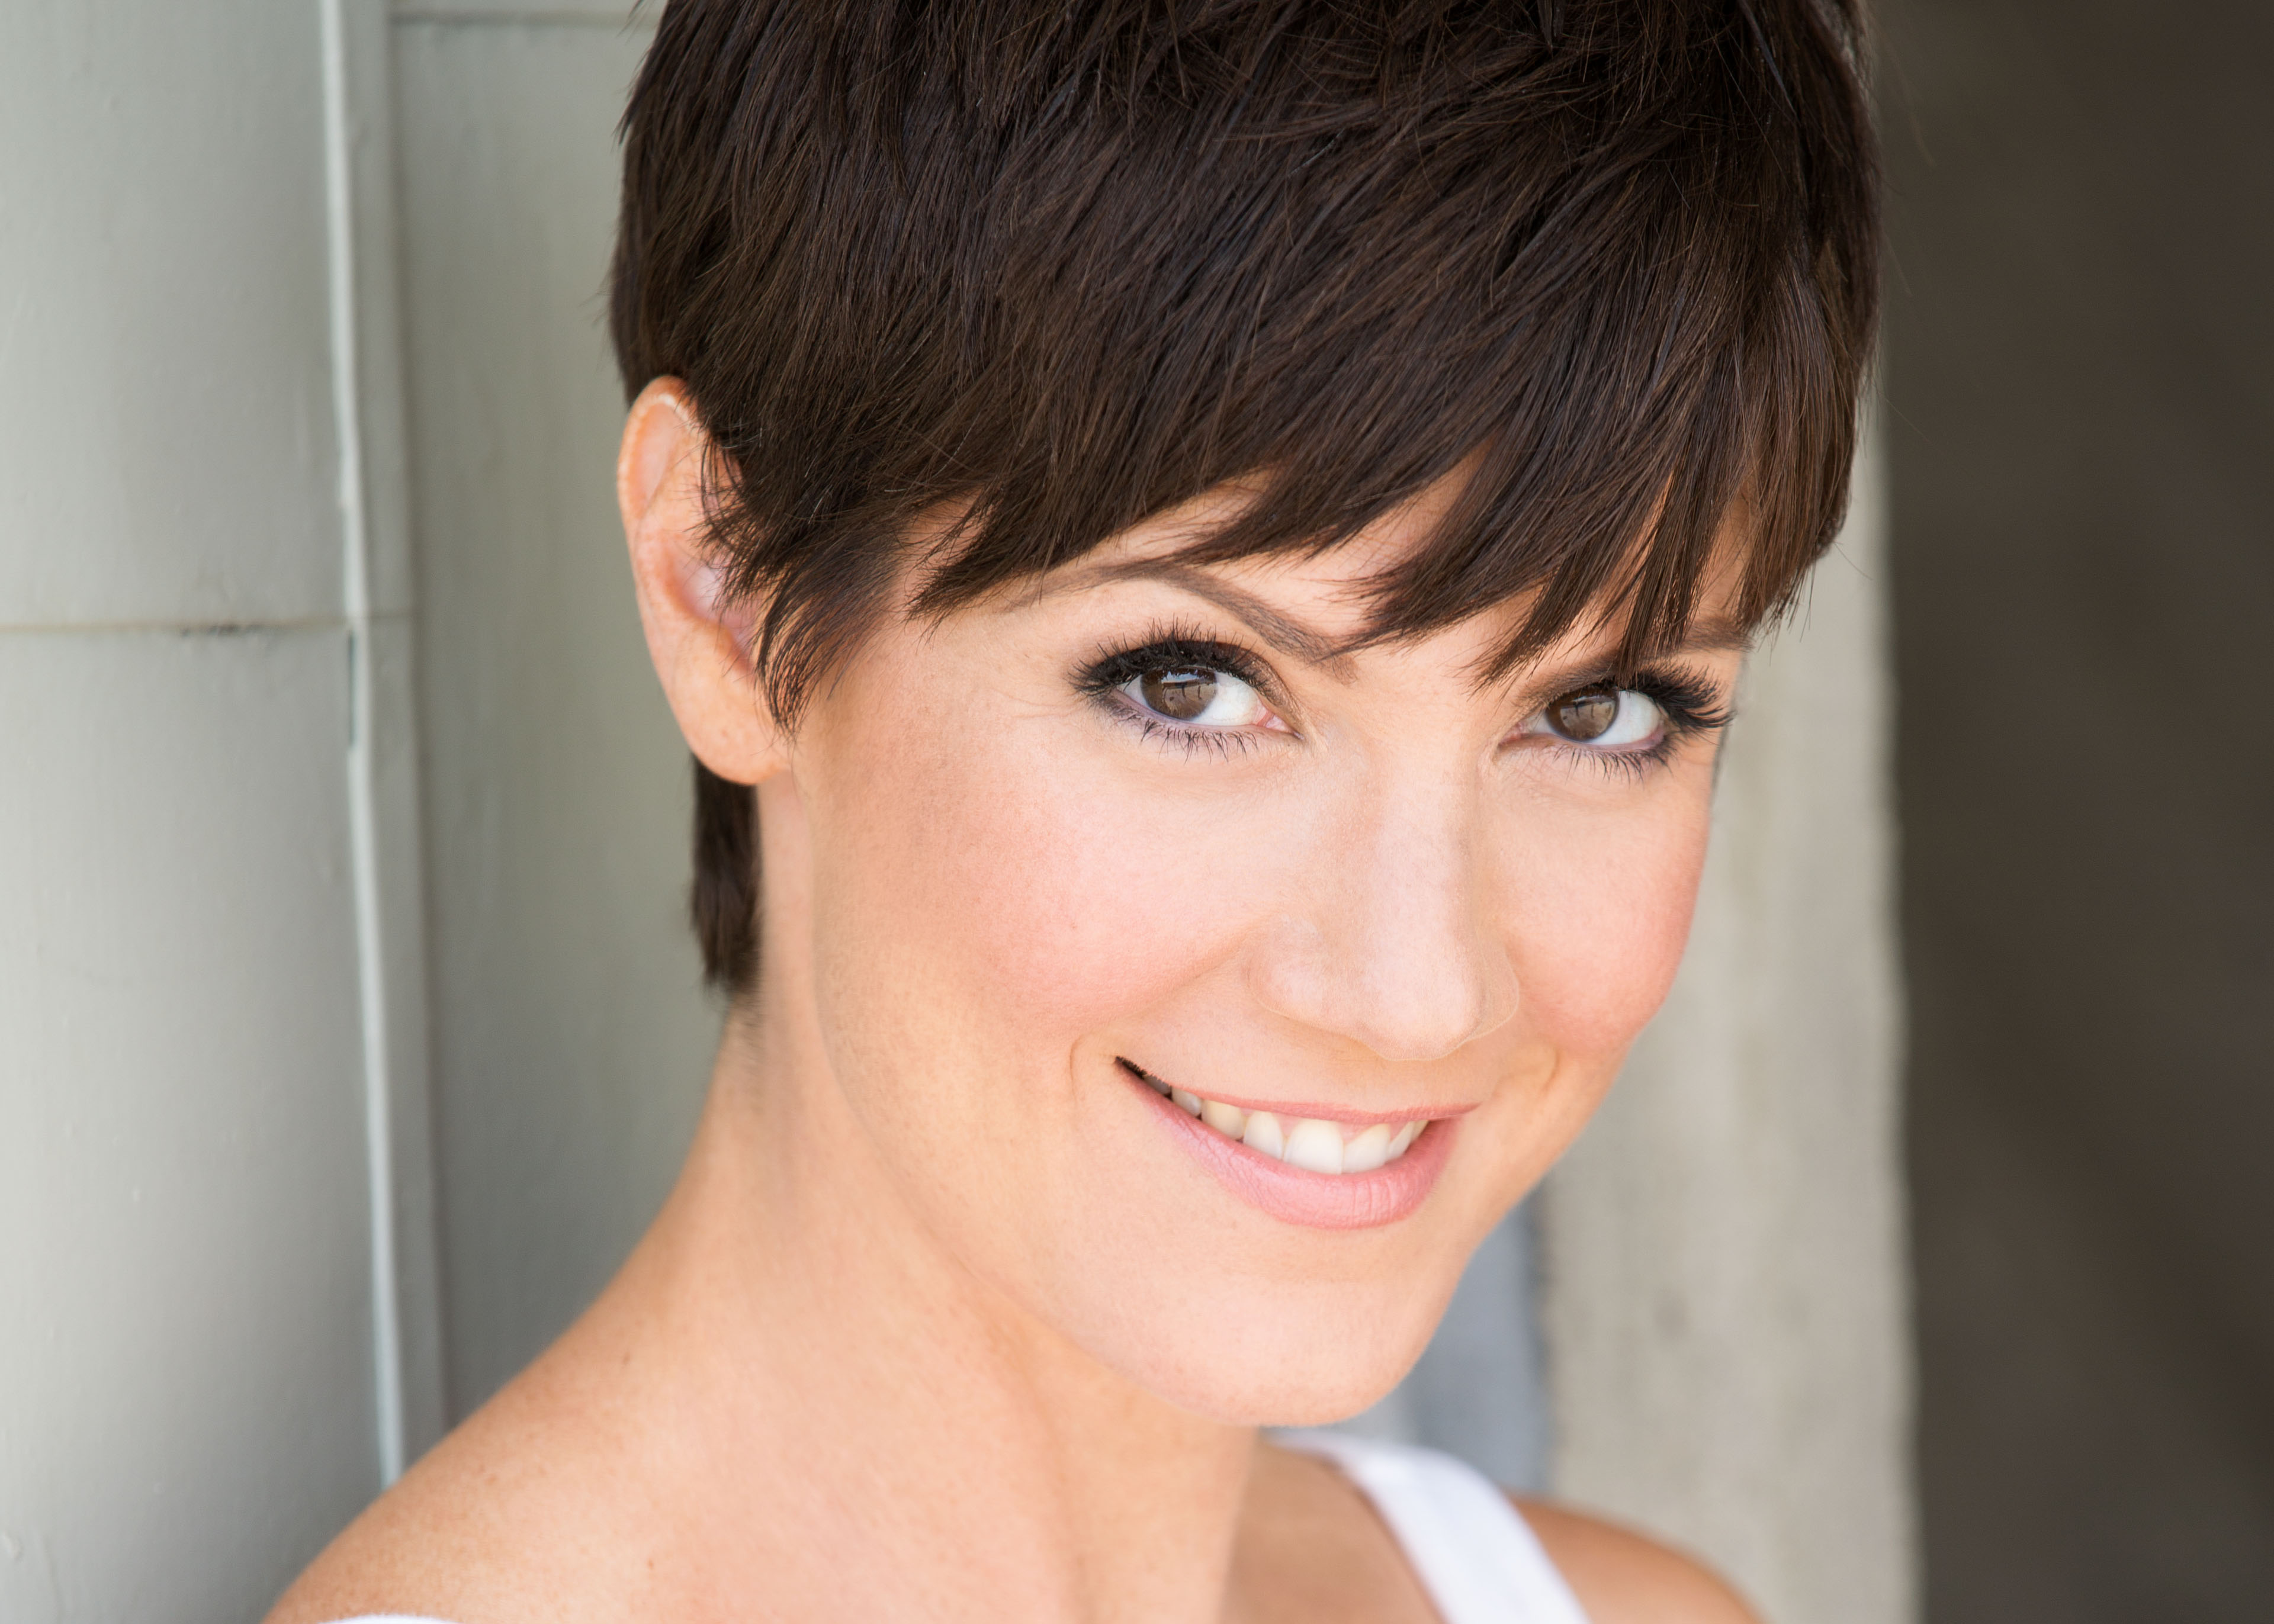 Wondrous 10 Things With Zoe Mclellan Celebrity Fashion Amp Style Trends Short Hairstyles Gunalazisus